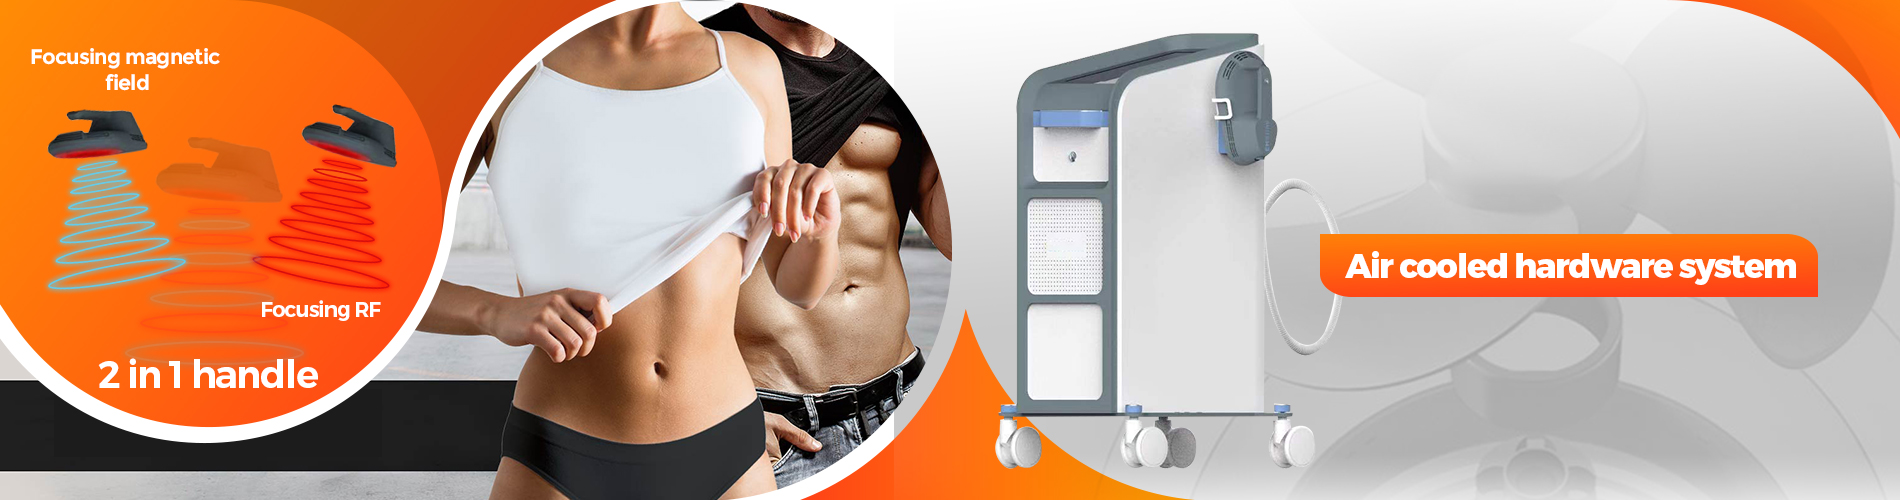 hiemt emsculpt neo muscle building machine